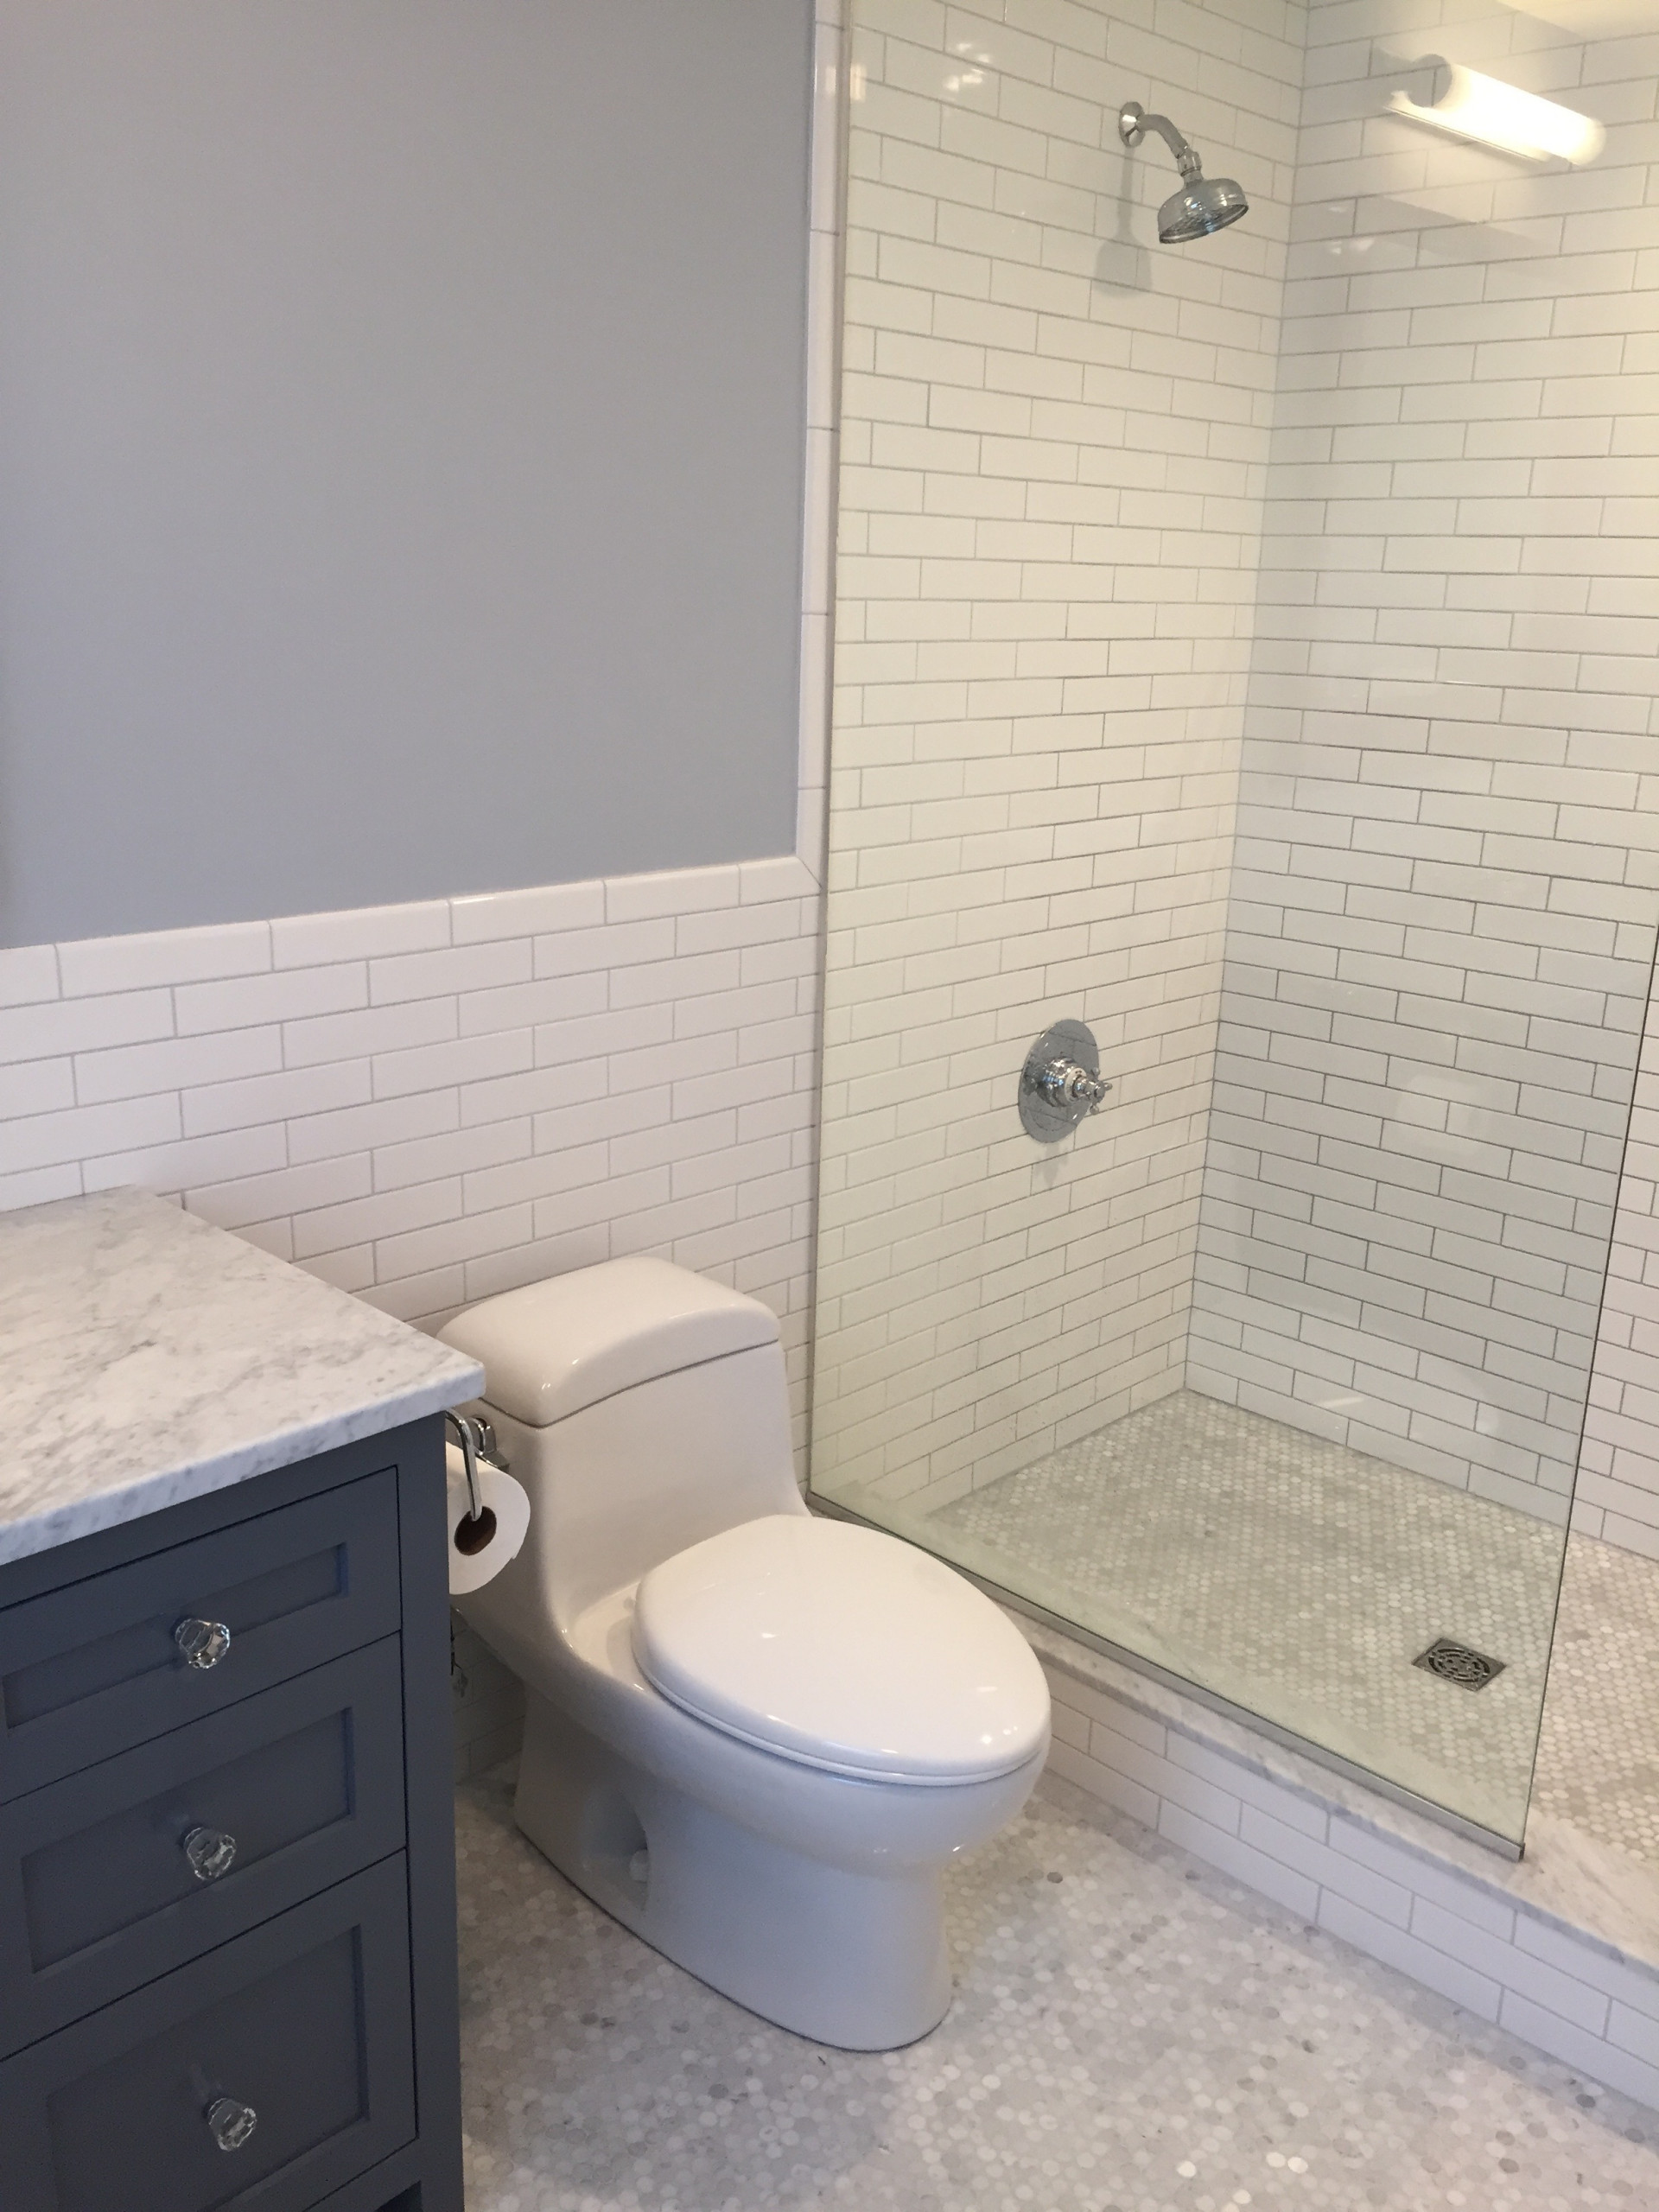 75 Beautiful Traditional Doorless Shower Pictures Ideas May 2021 Houzz